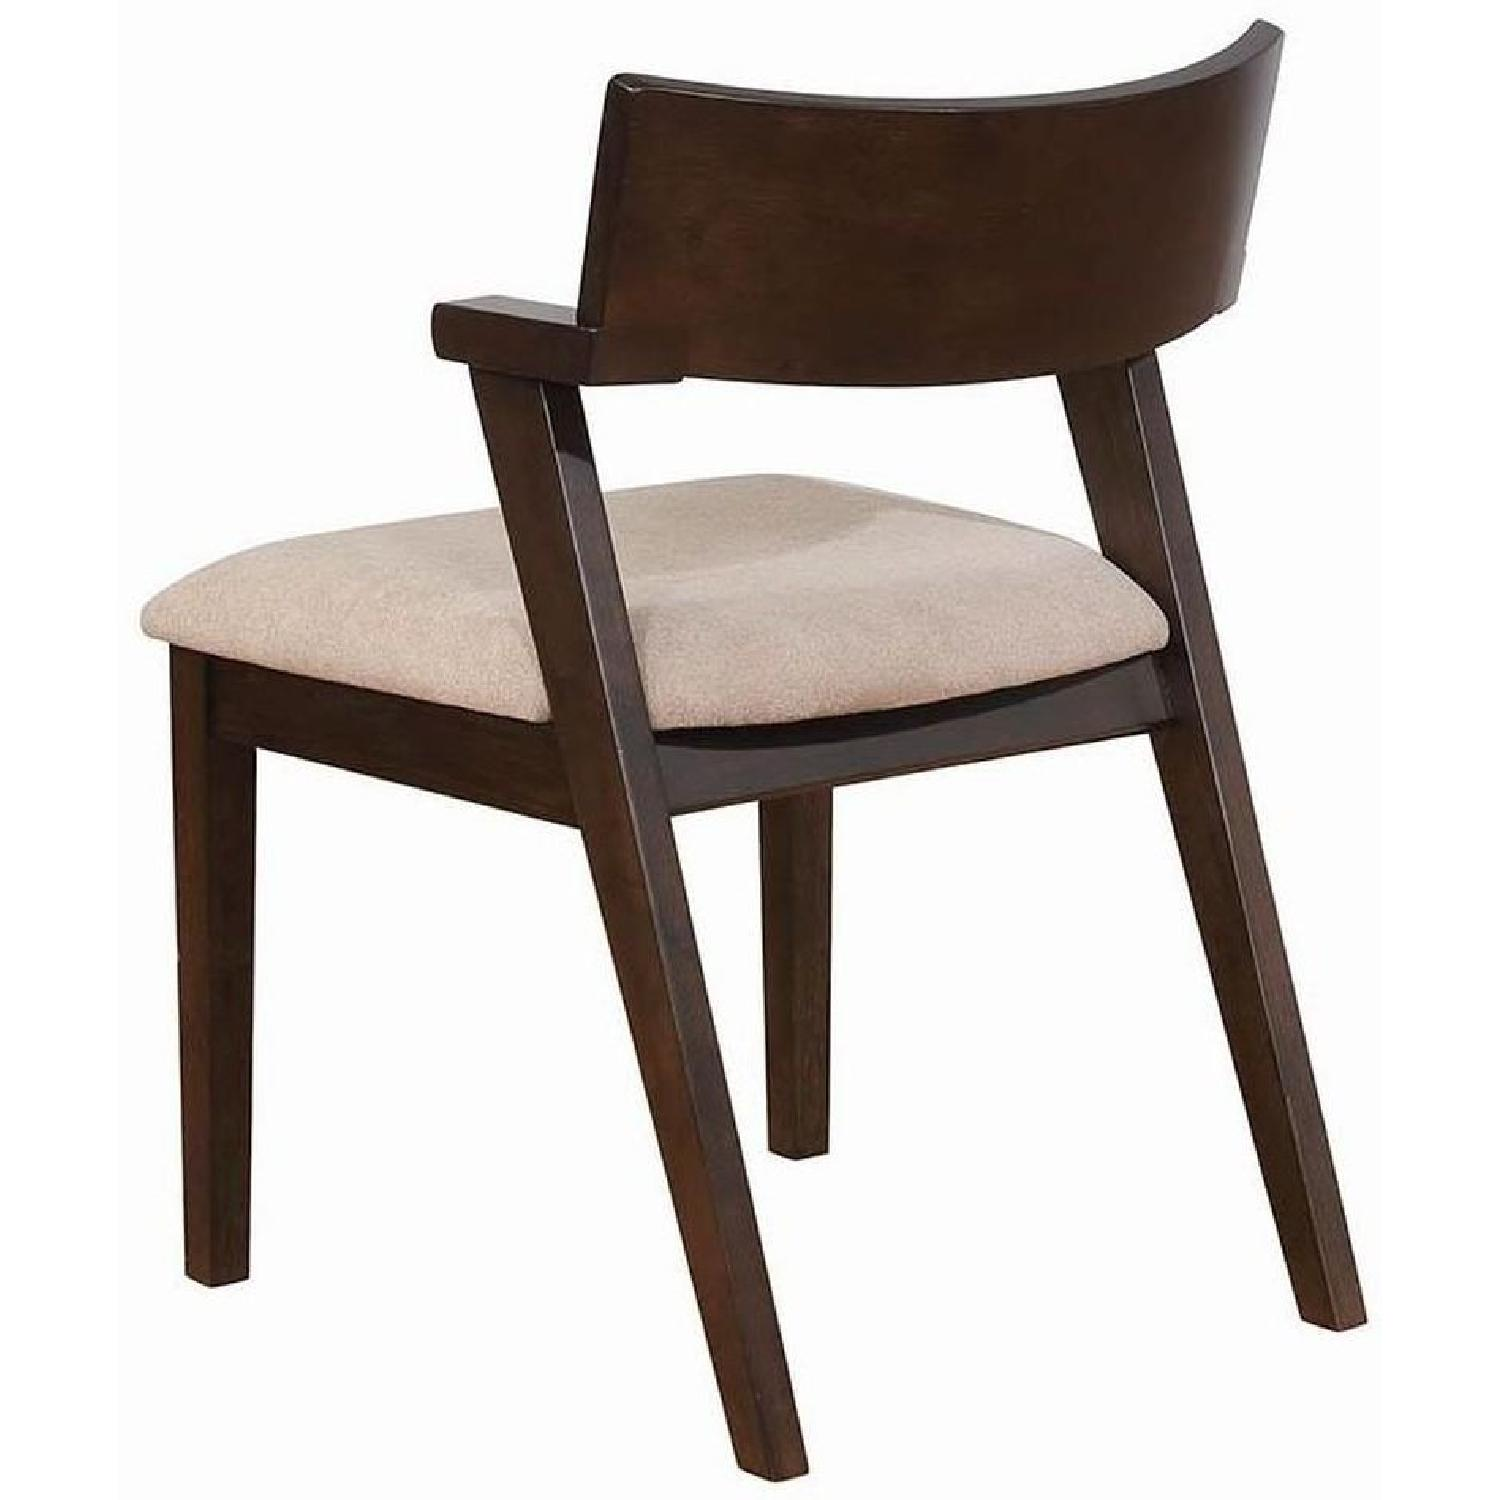 Mid Century Style Dining Chair w/ Light Brown Cushioned Seat - image-3